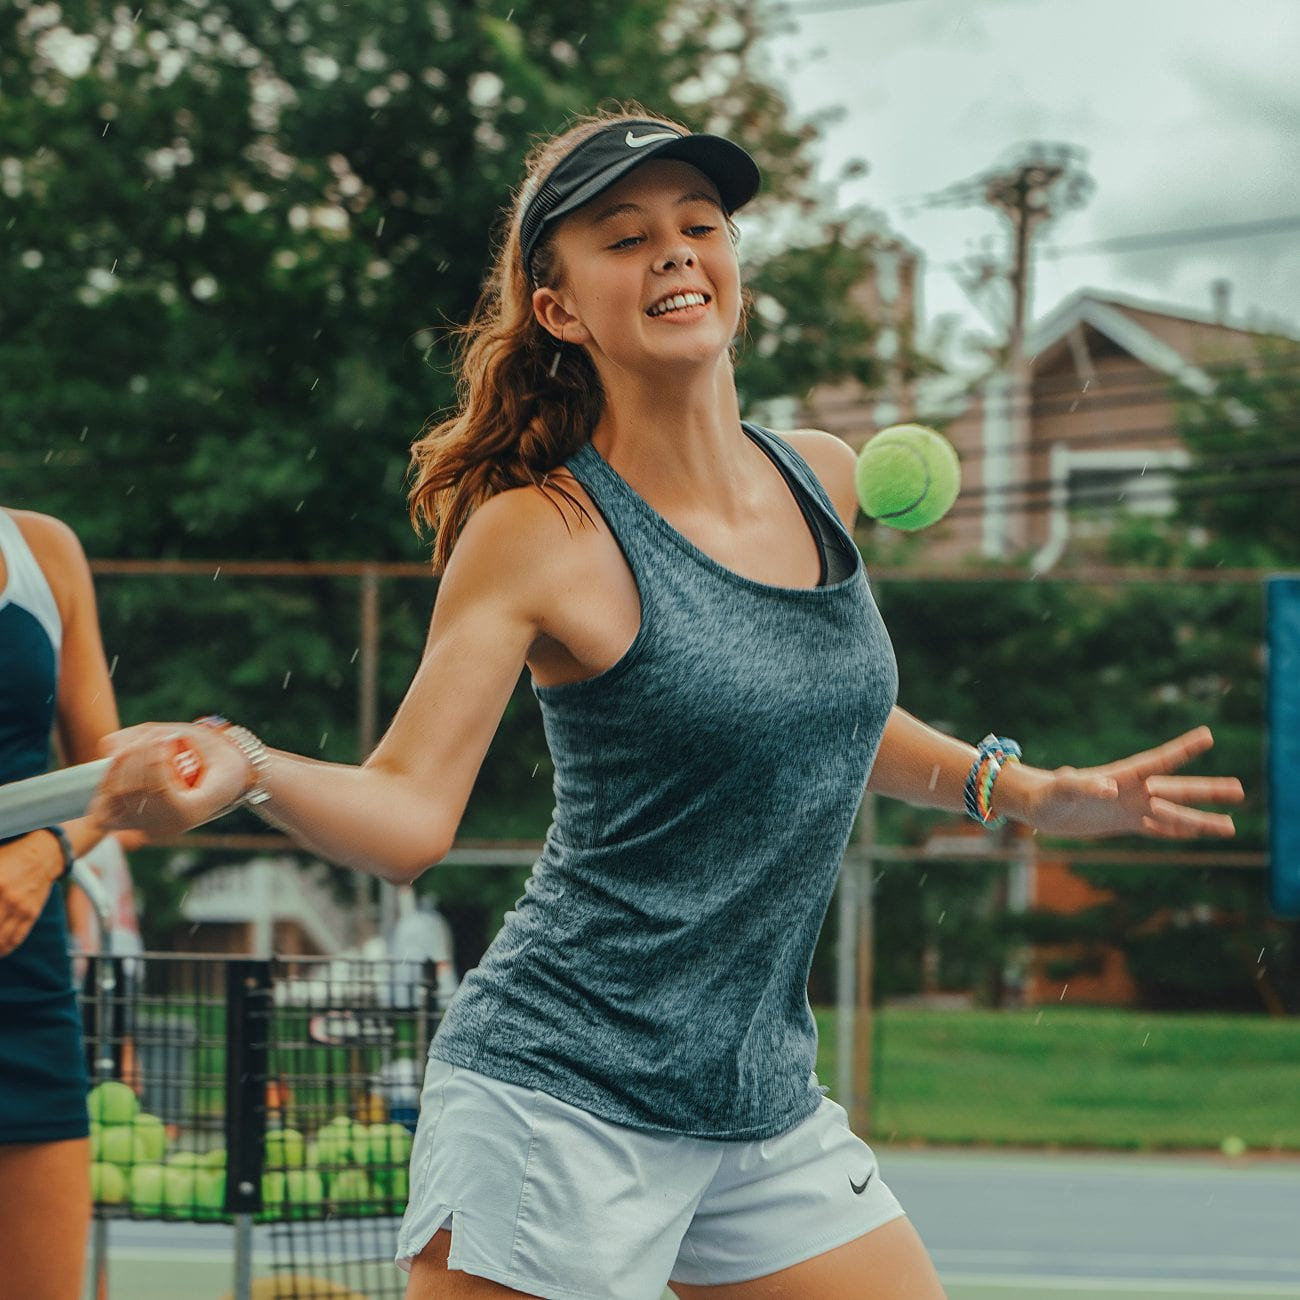 Kids tennis lessons in Cherry Hill